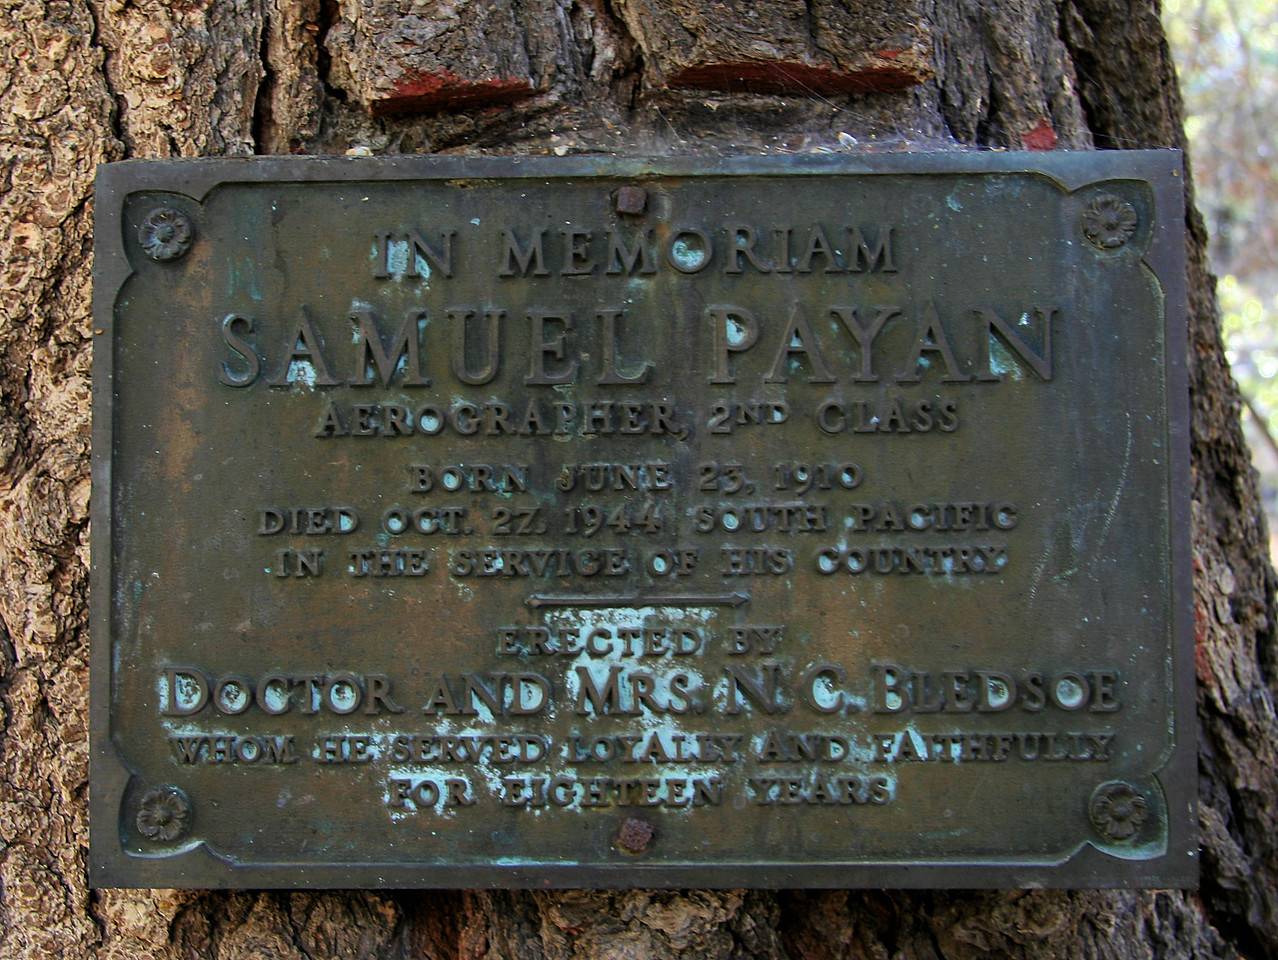 Samuel Payan Memorial Sign